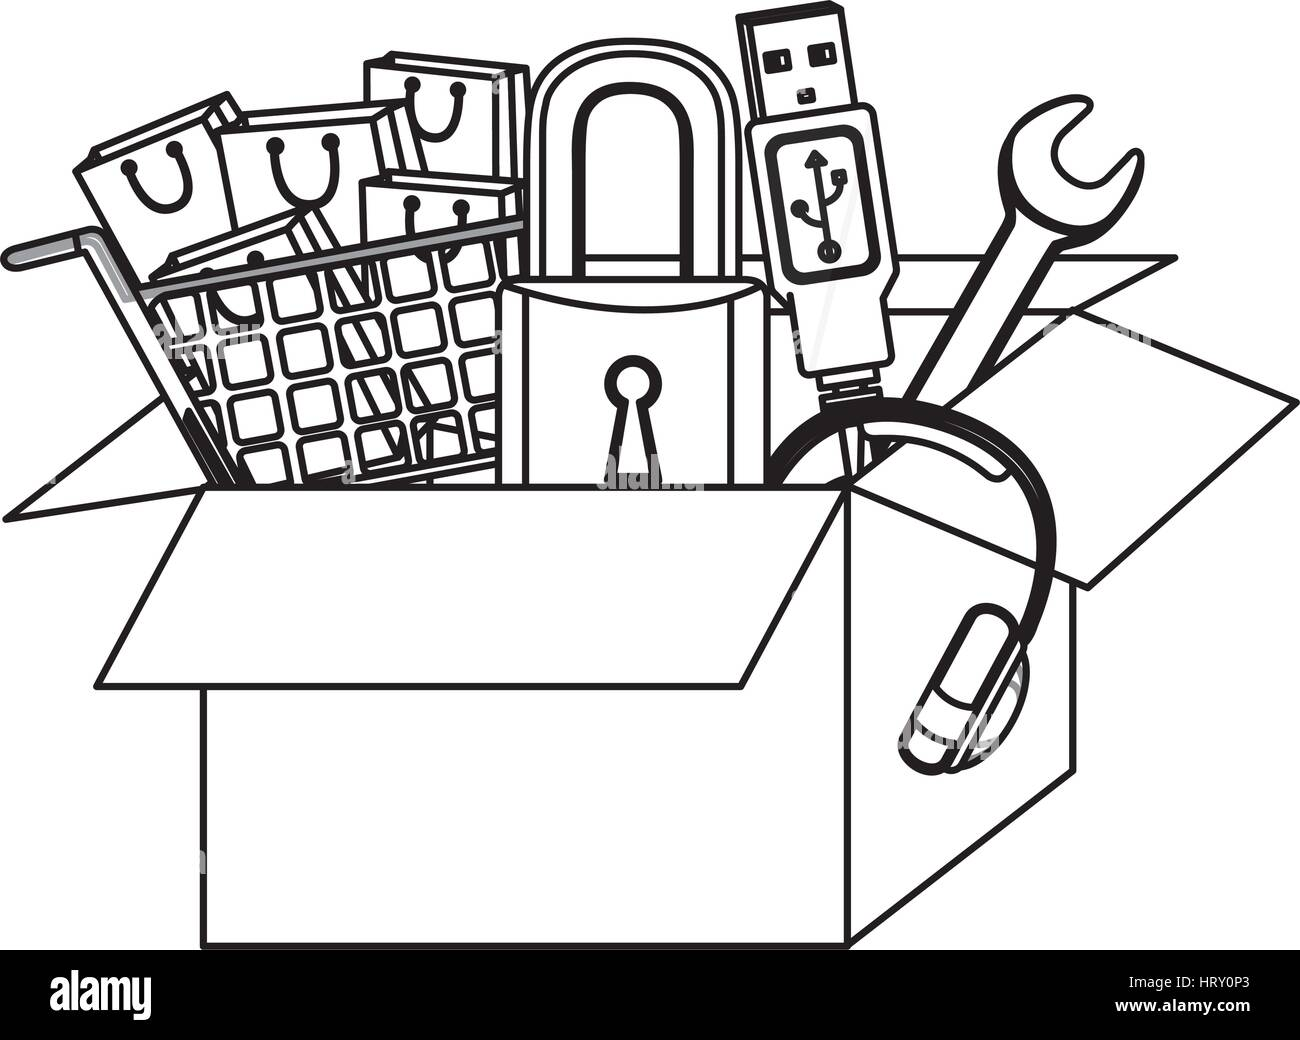 monochrome contour with box obsolete objects - Stock Image